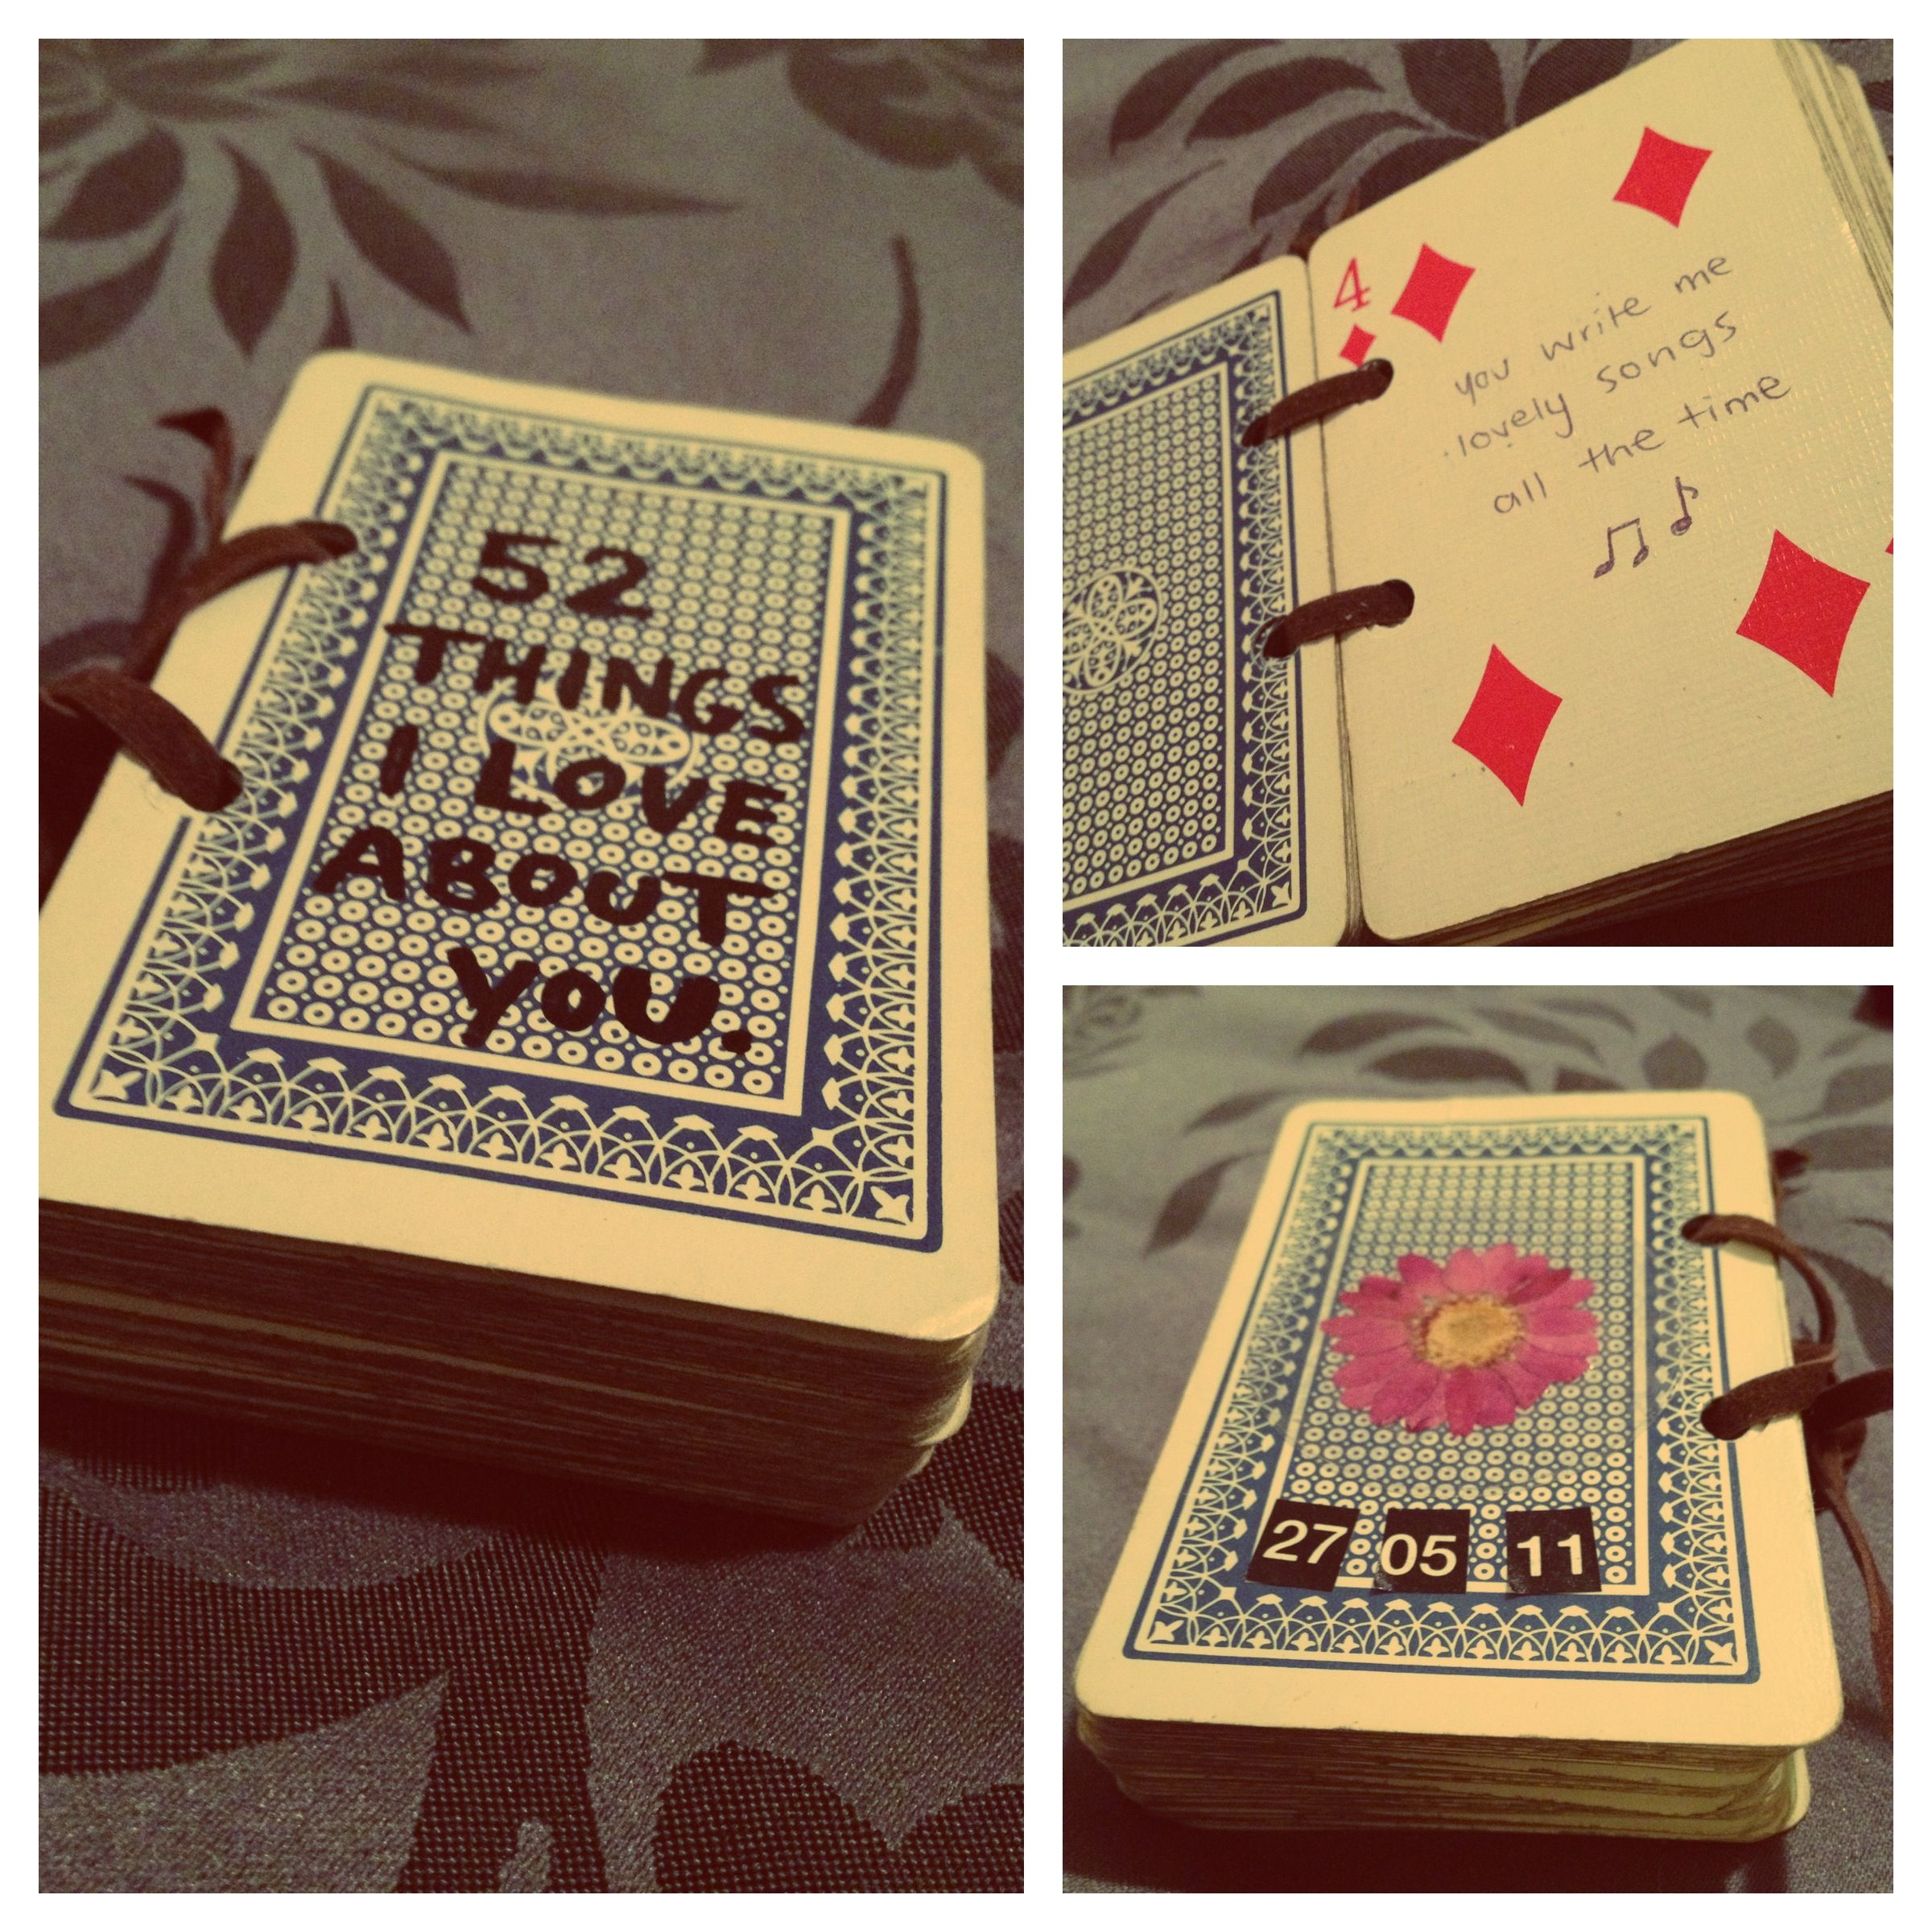 my own take on the '52 things I love about you' card gift